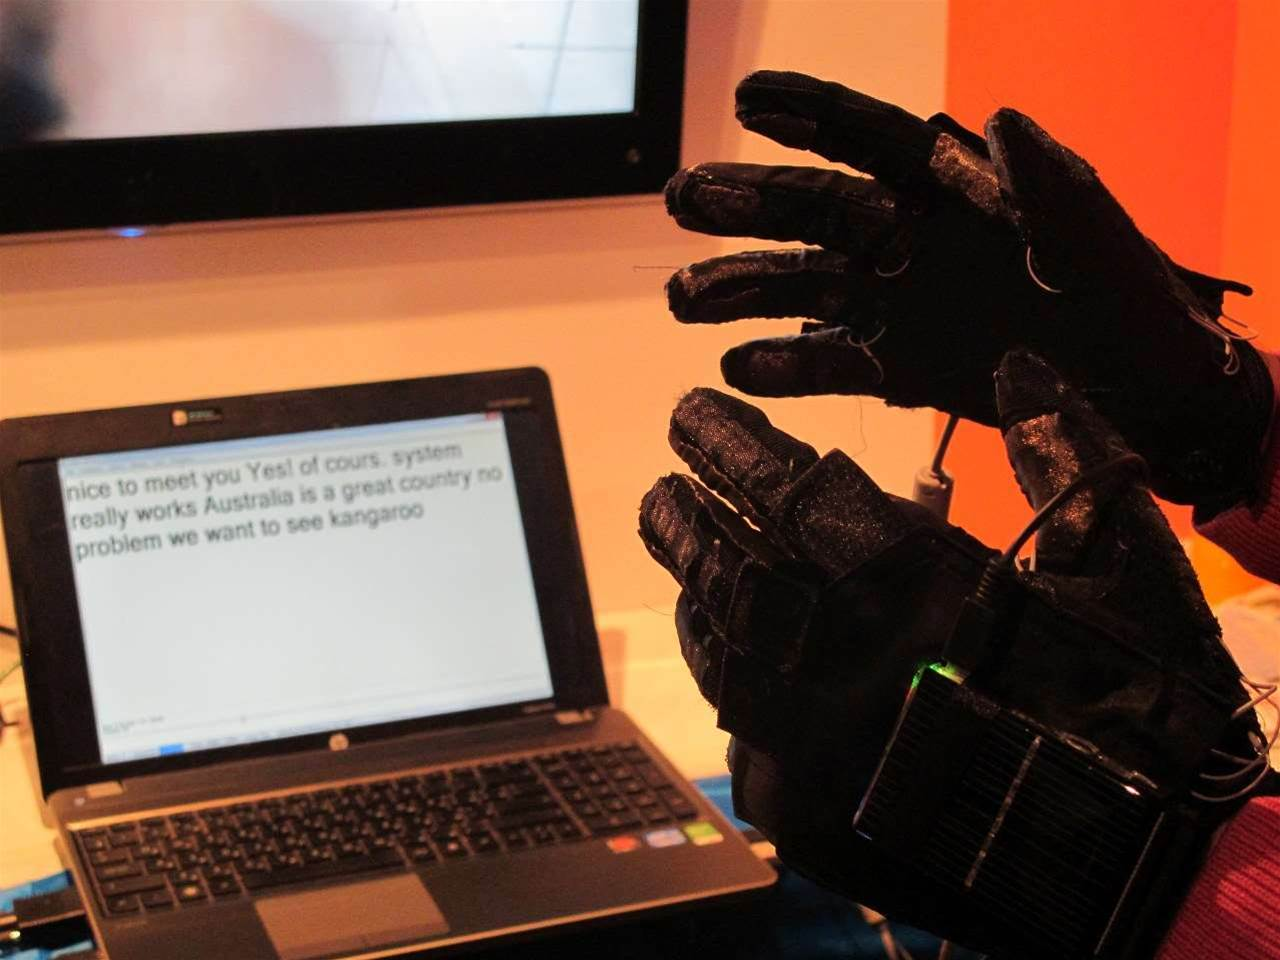 In Pictures: Amazing tech projects from Microsoft's Imagine Cup